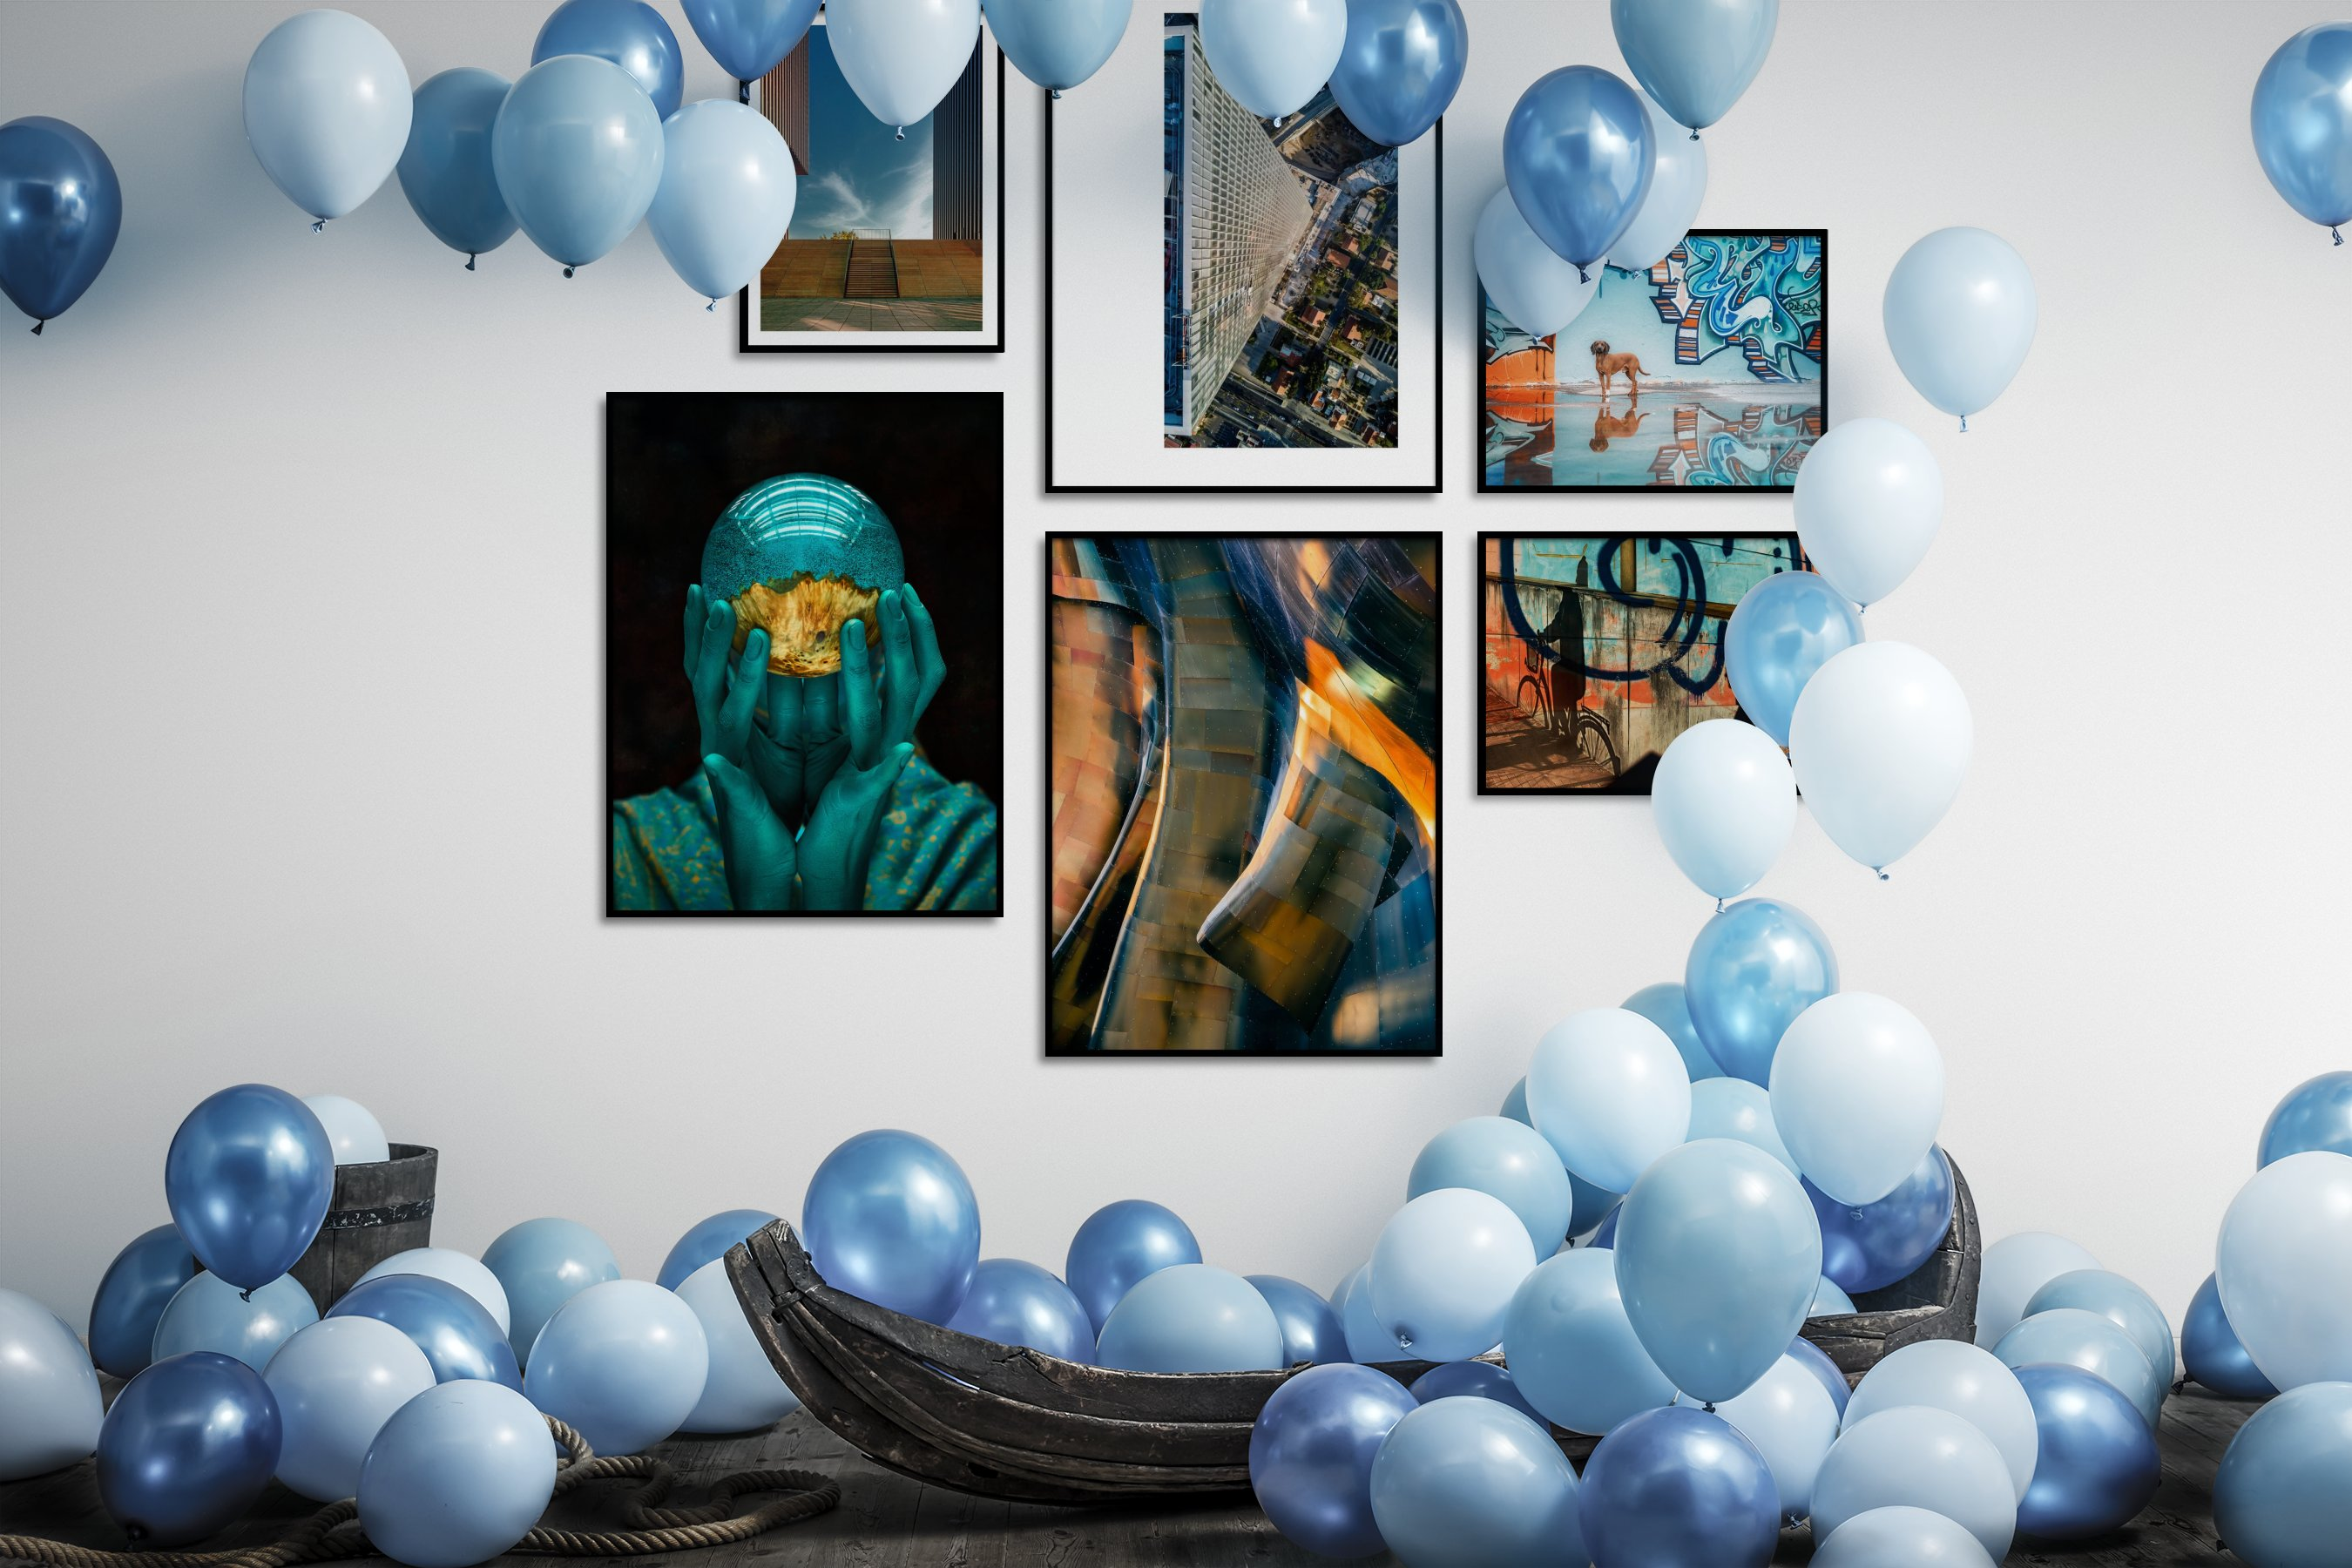 Gallery wall idea with six framed pictures arranged on a wall depicting For the Moderate, City Life, For the Maximalist, and Animals